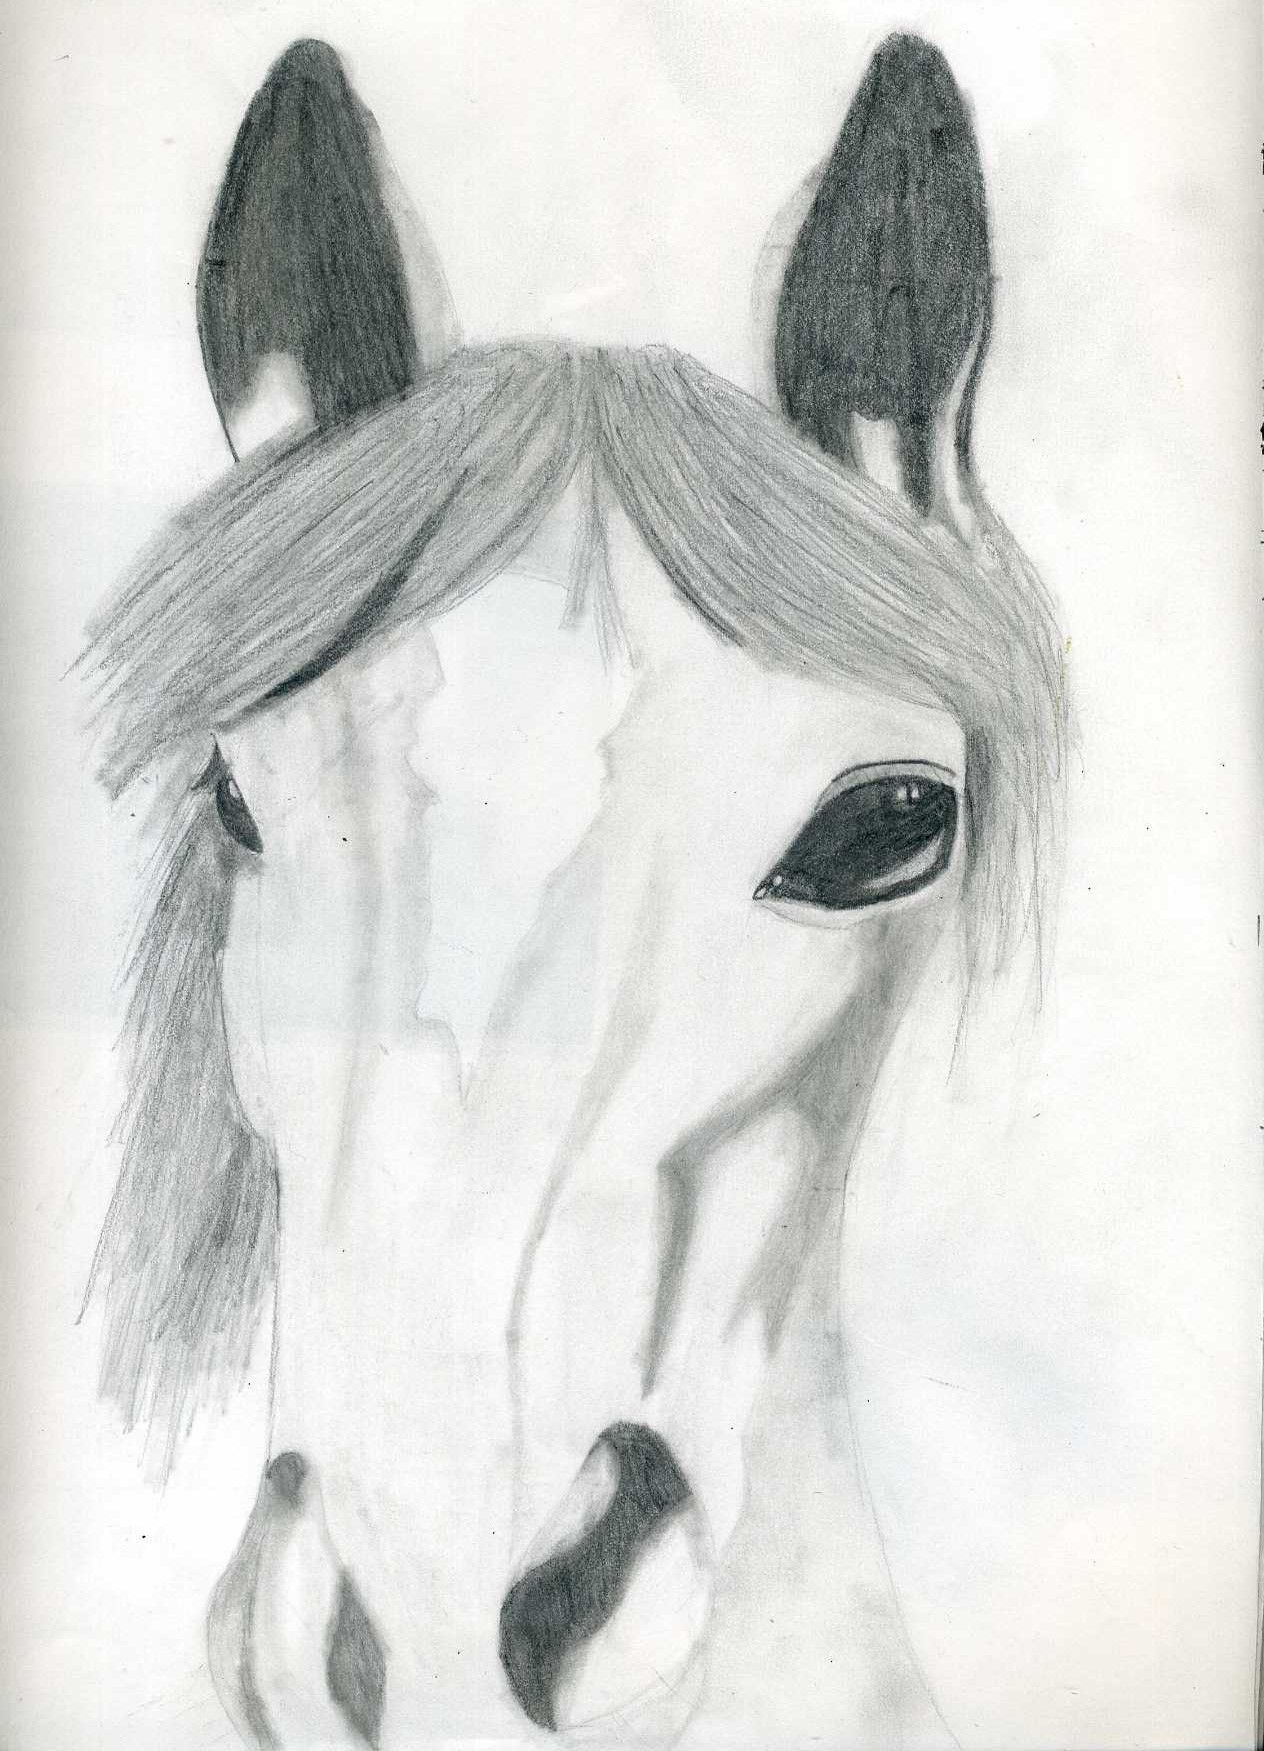 horse sketch art pencils shading Art 2 Pinterest